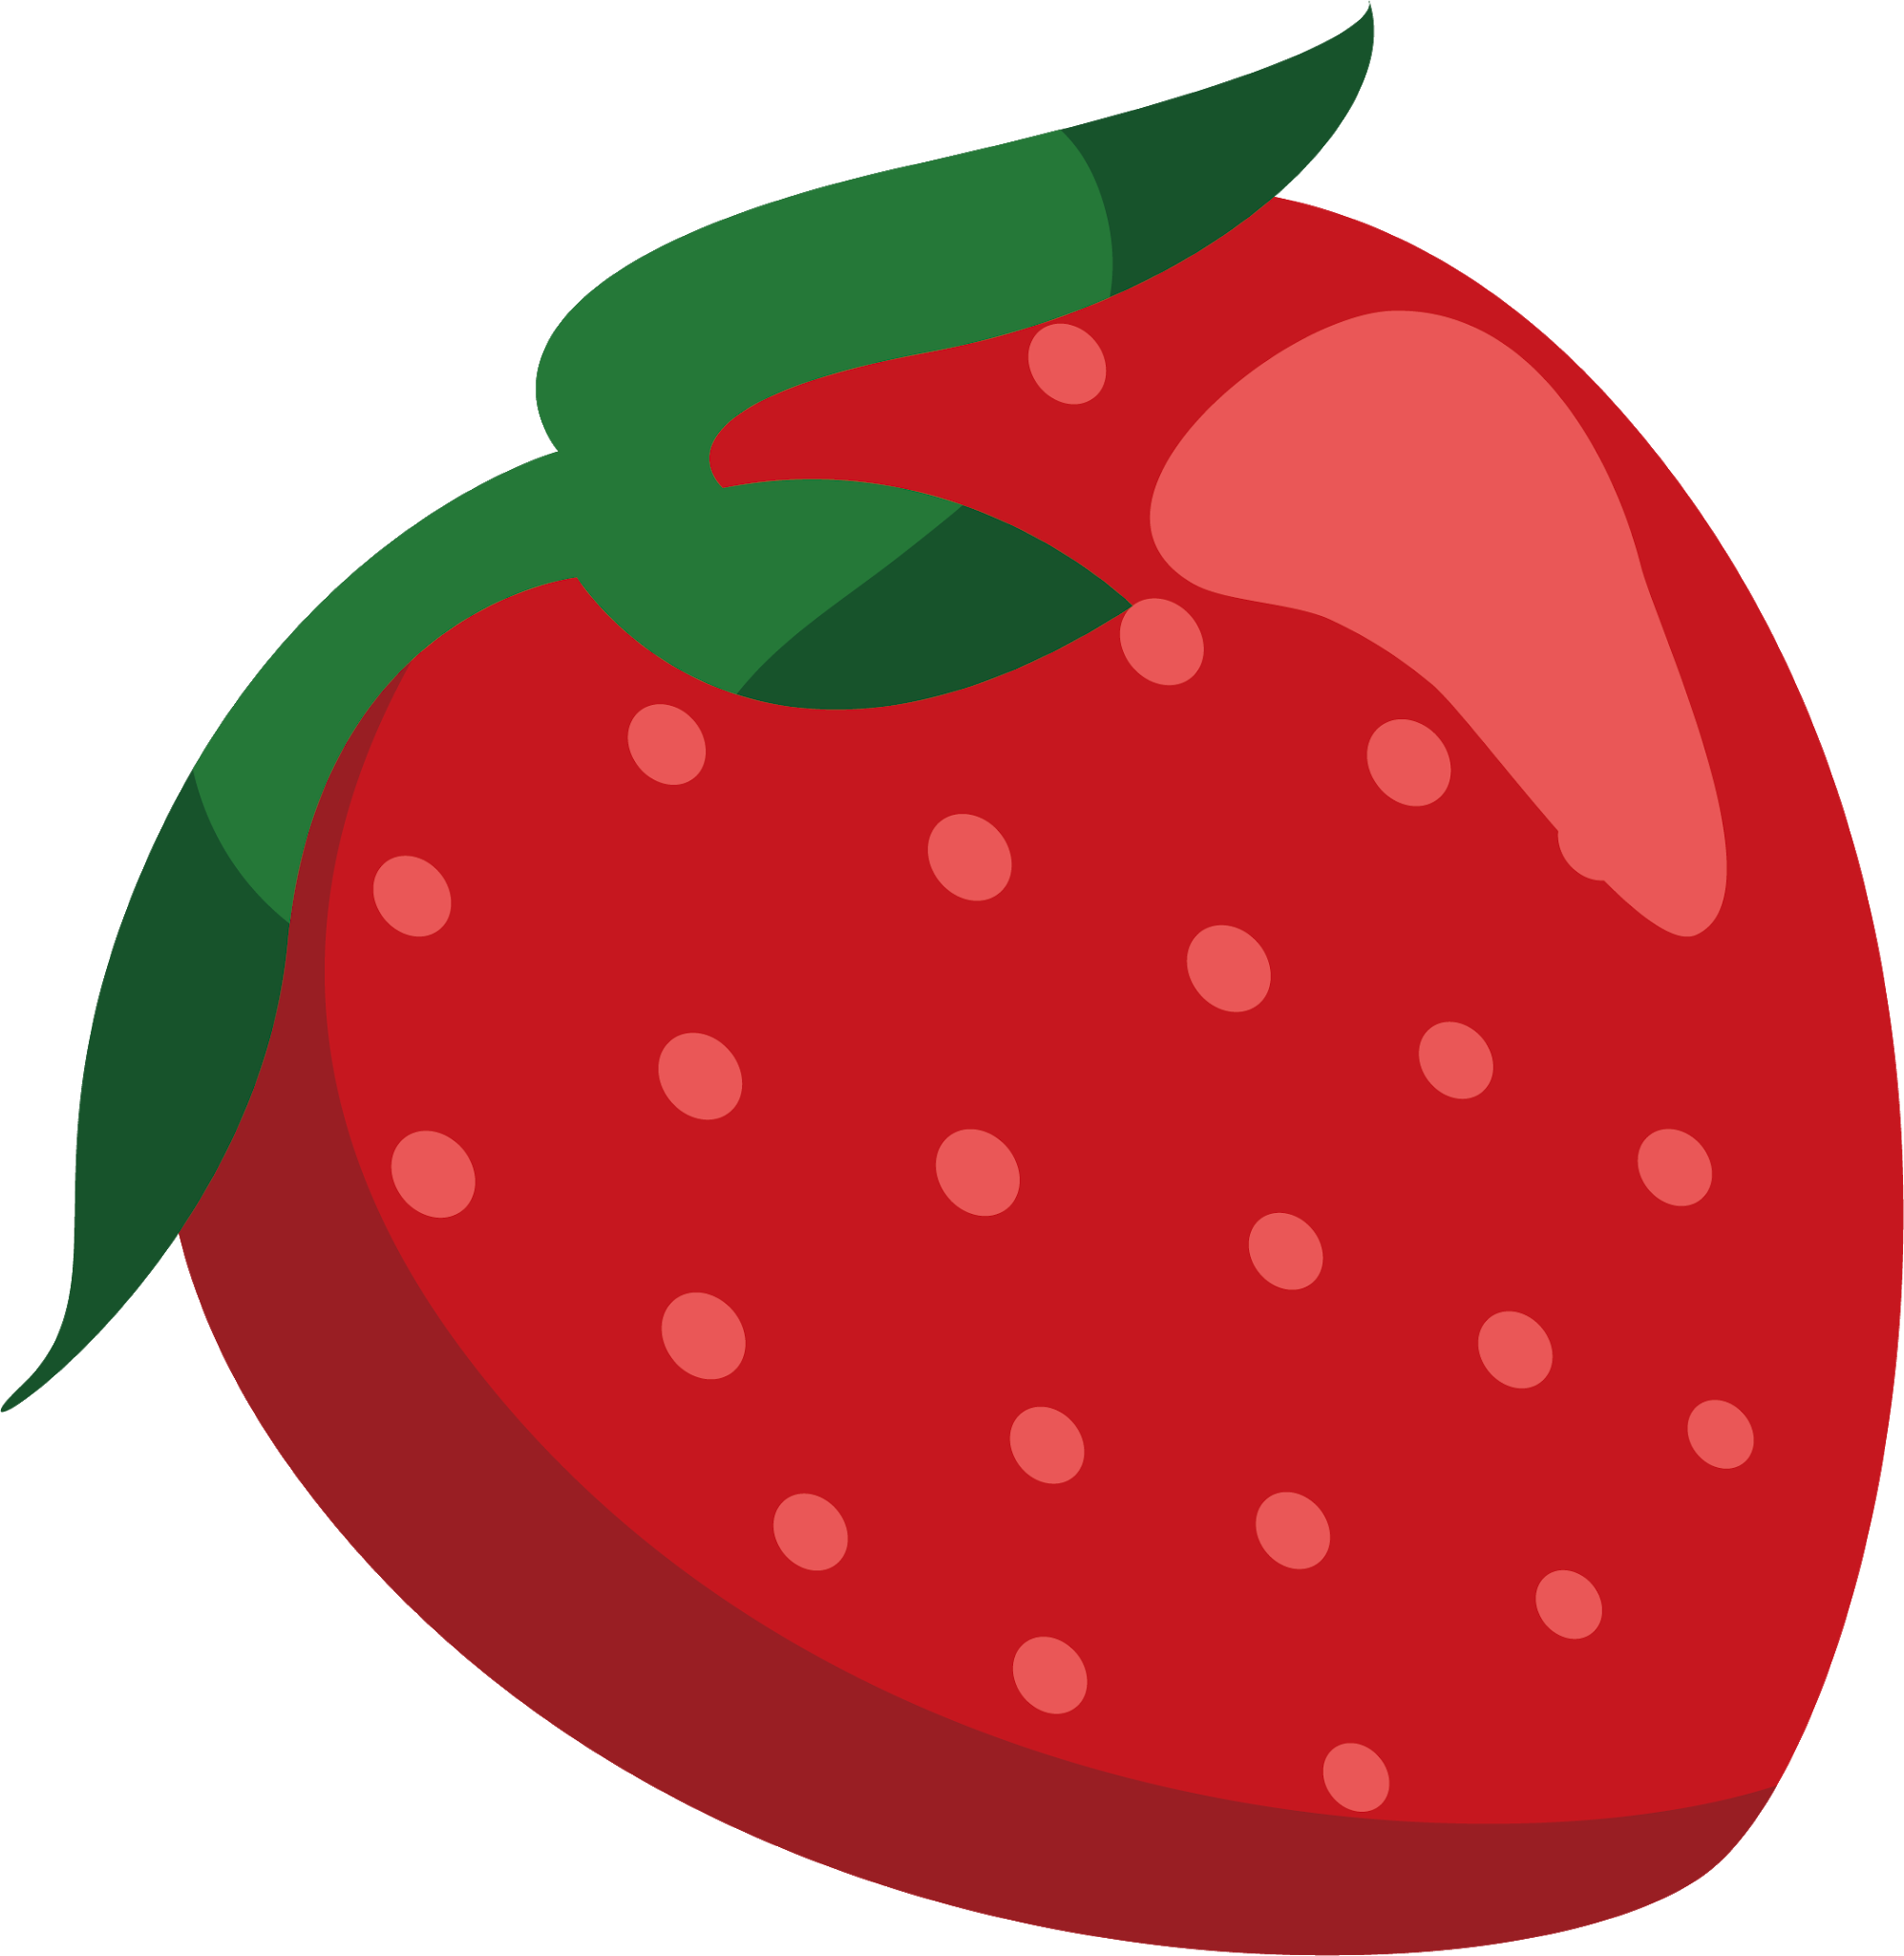 Pin by pngsector on. Strawberries clipart strawbery